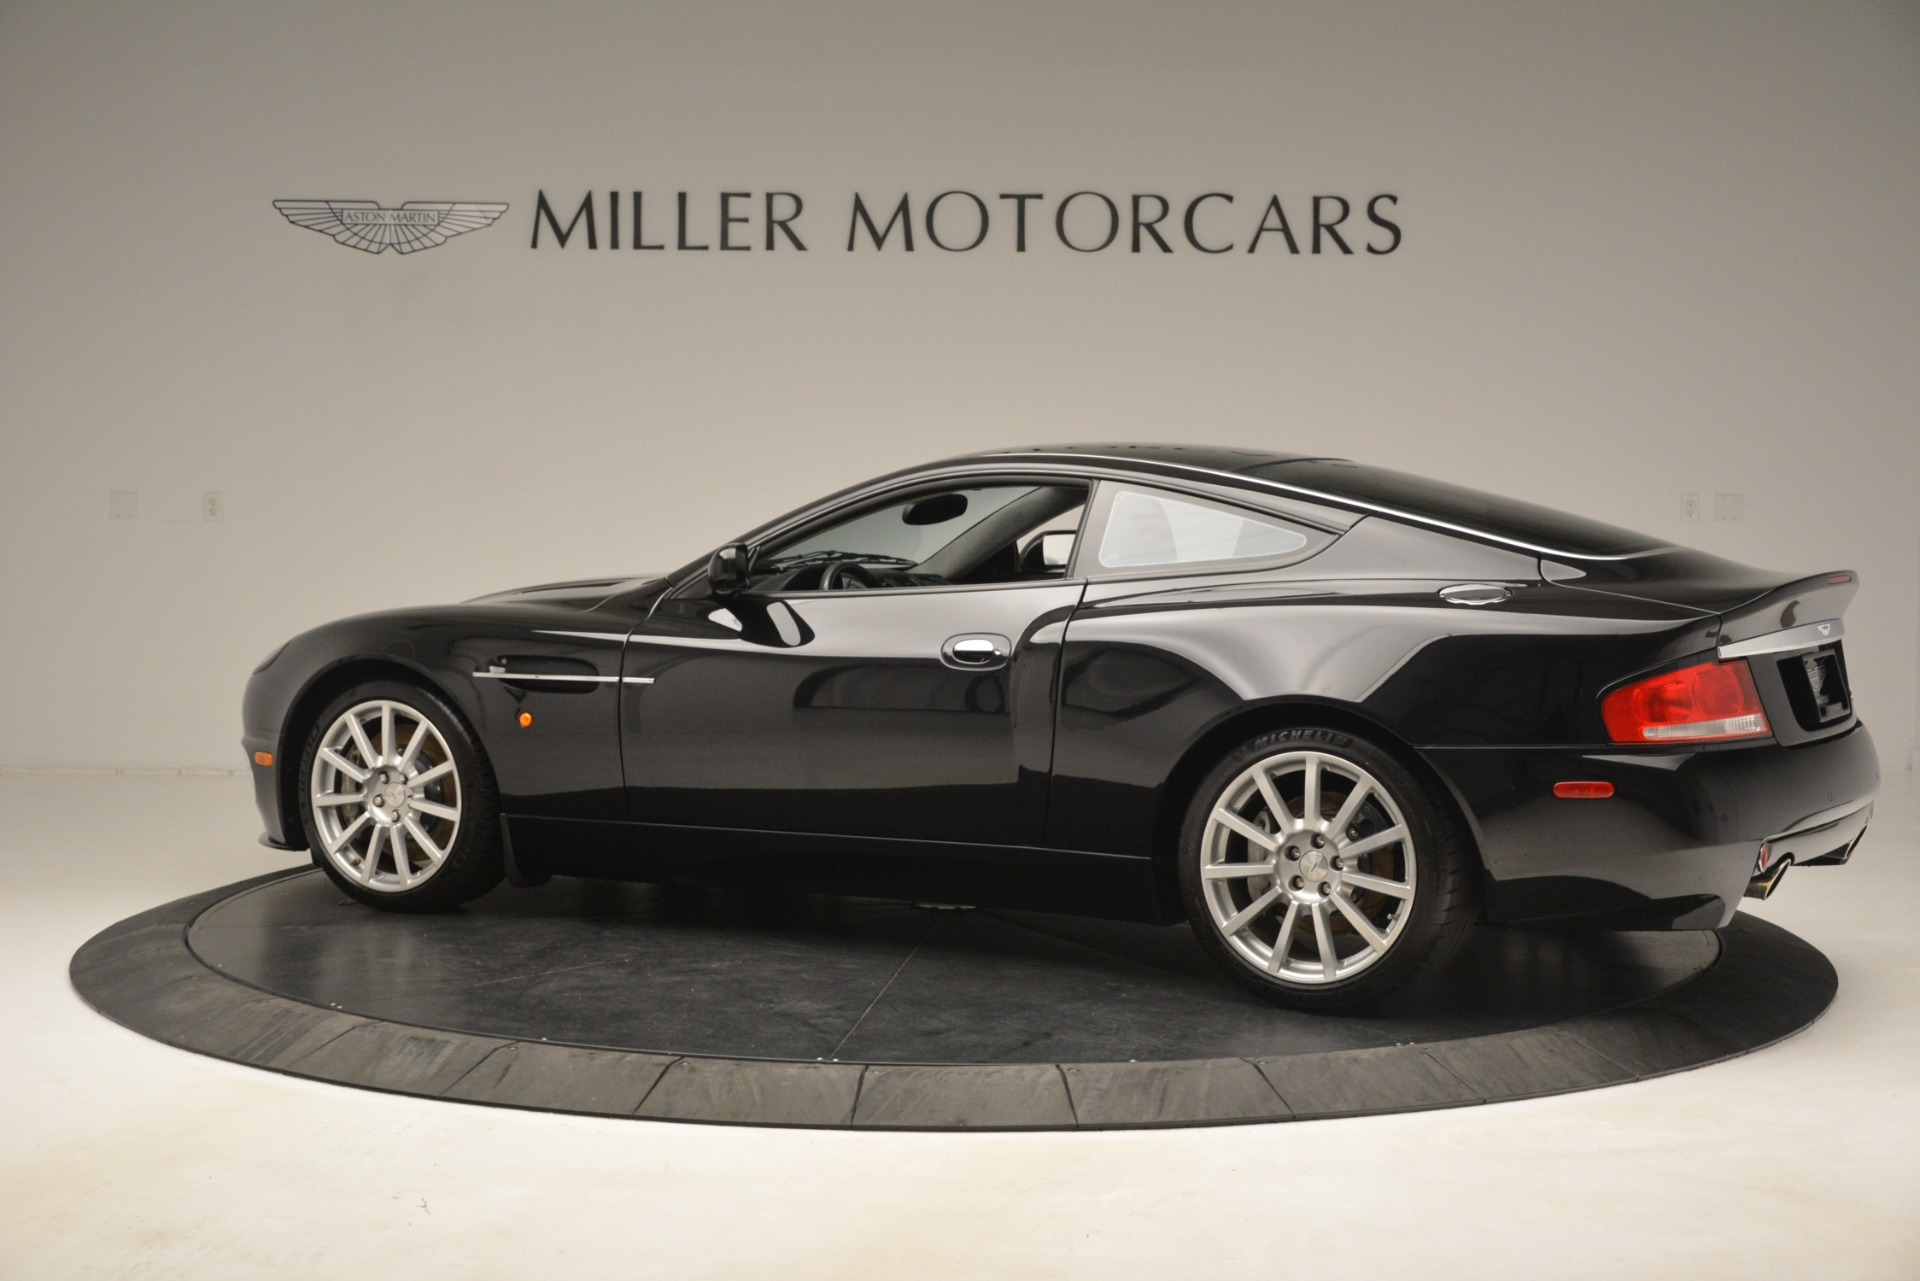 Used 2005 Aston Martin V12 Vanquish S For Sale In Westport, CT 3218_p4